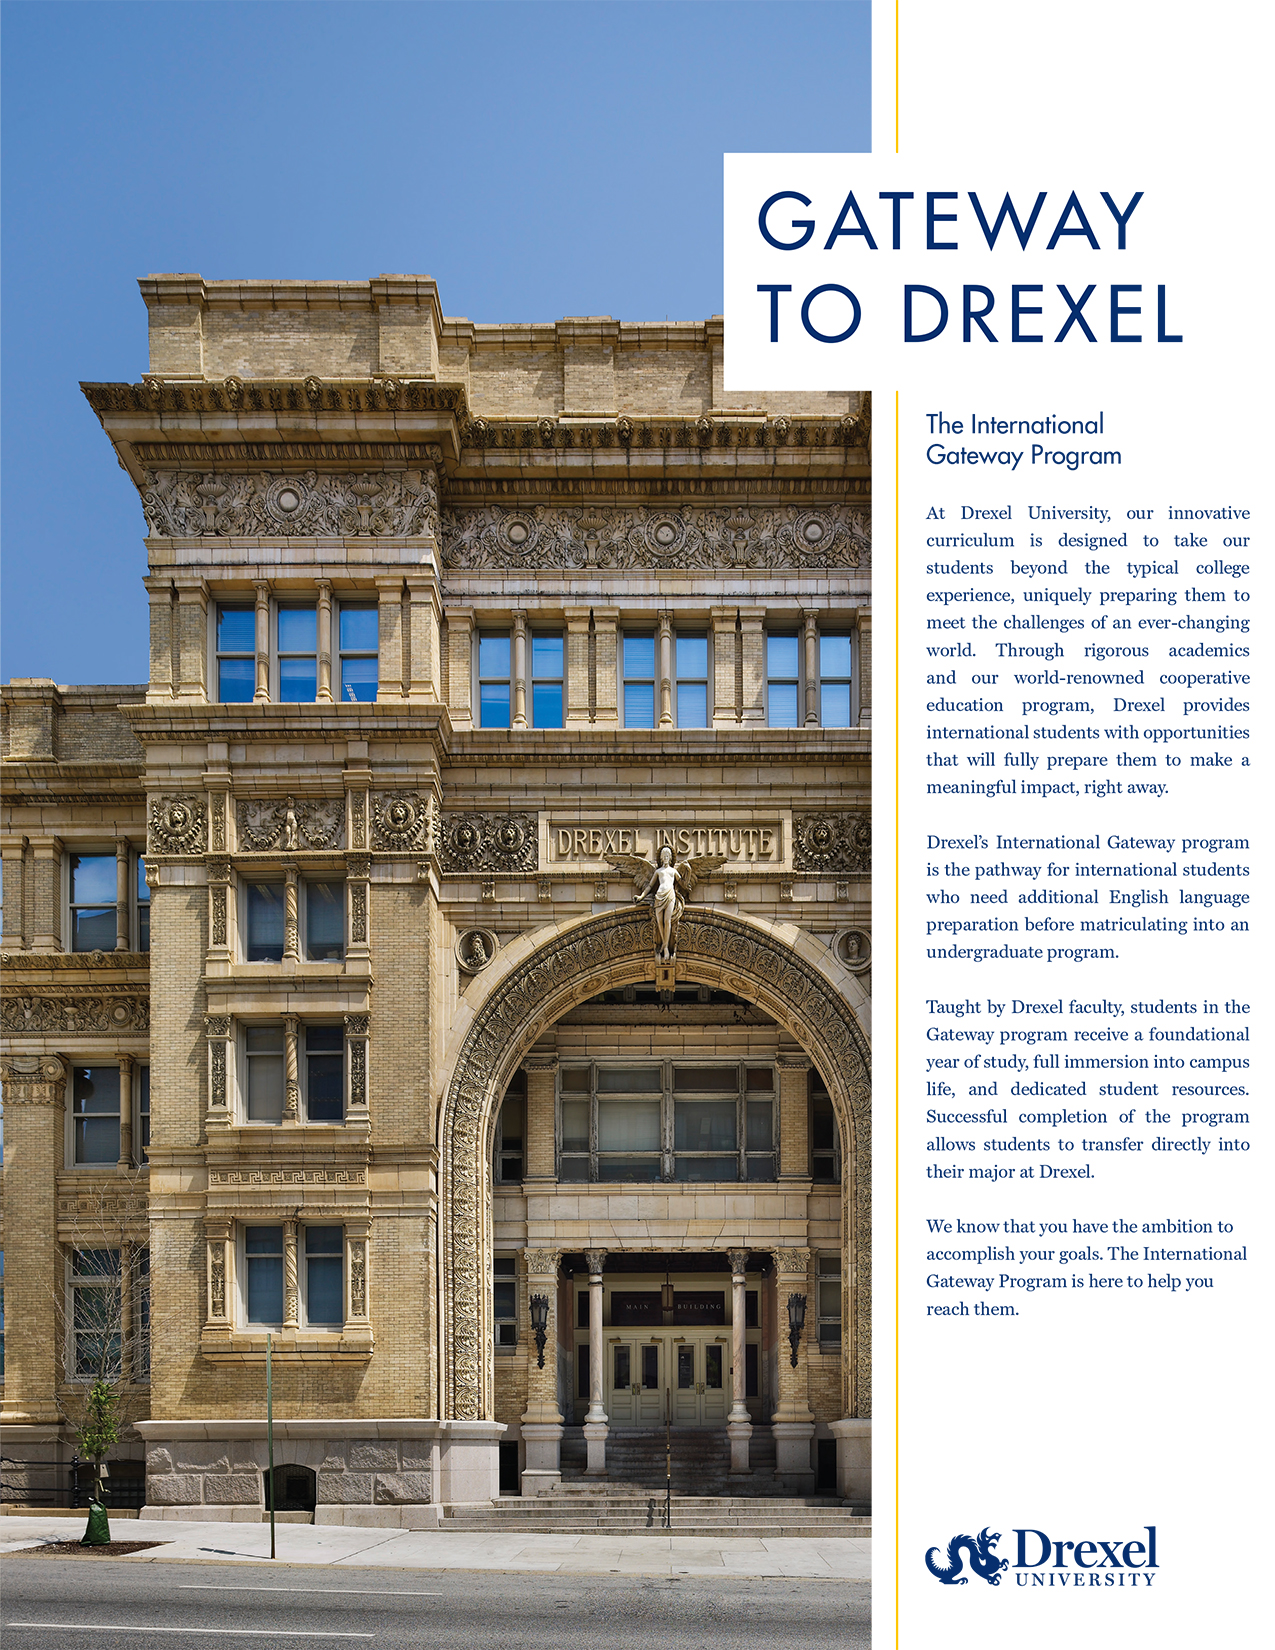 Gateway to Drexel - The International Gateway Program